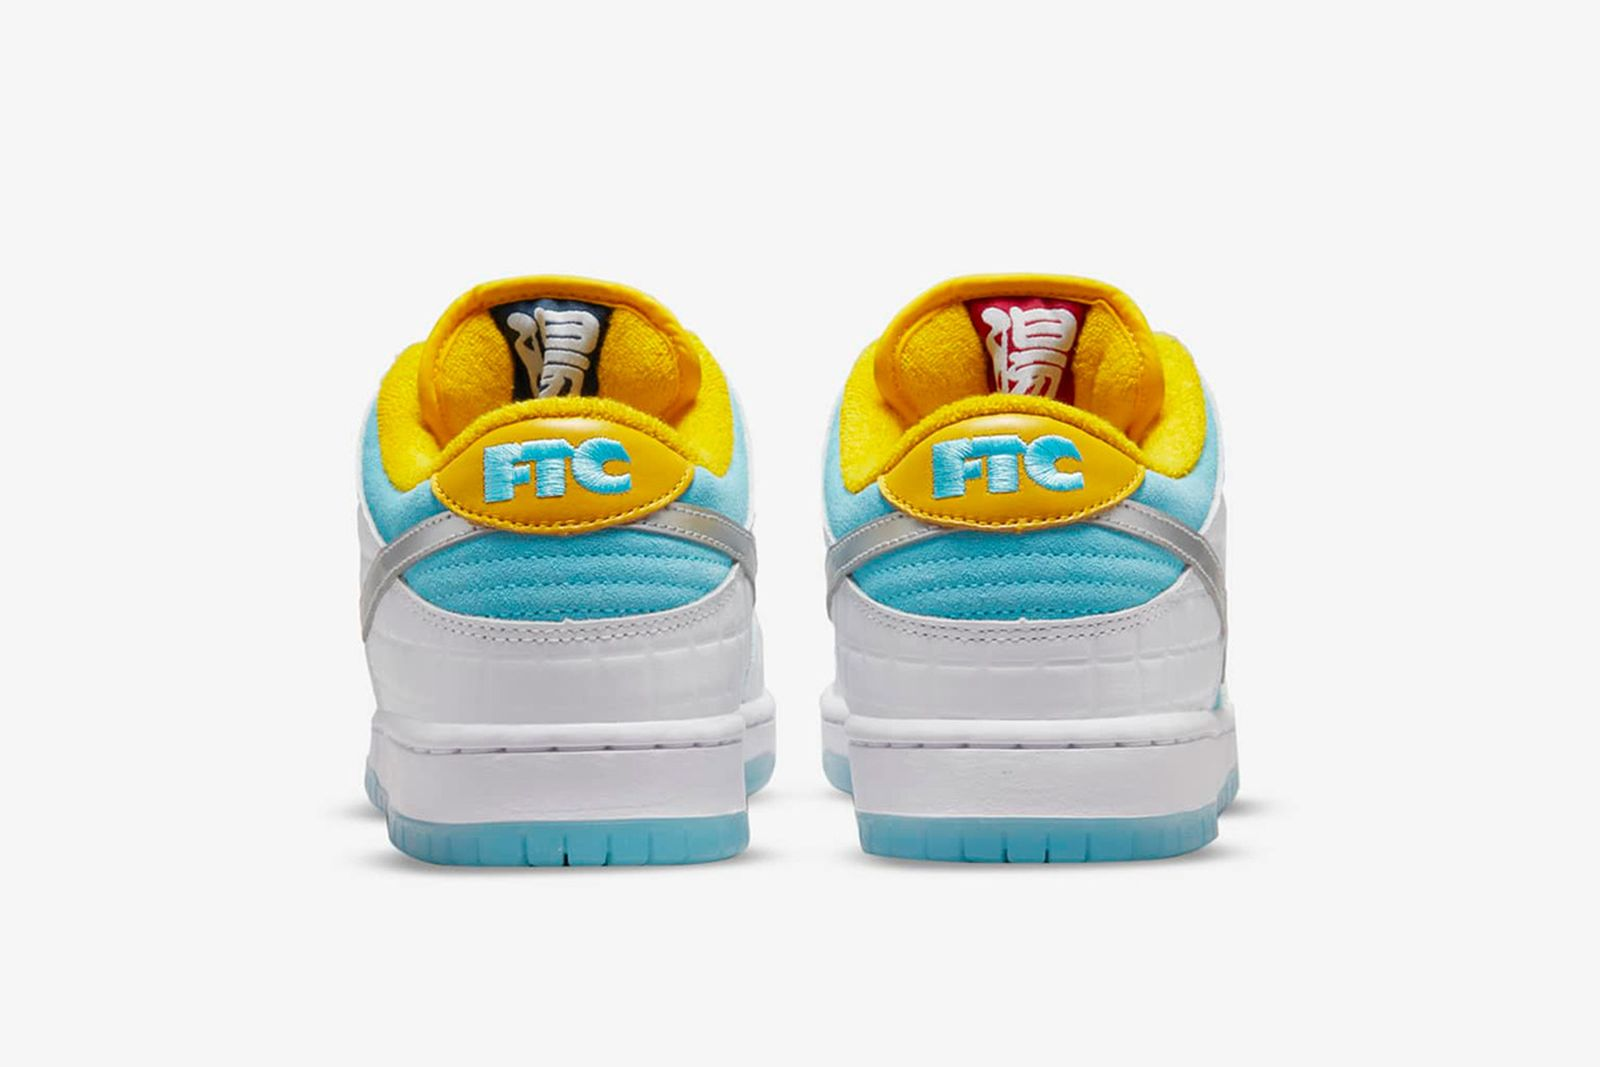 ftc-nike-sb-dunk-low-olympics-release-date-price-02